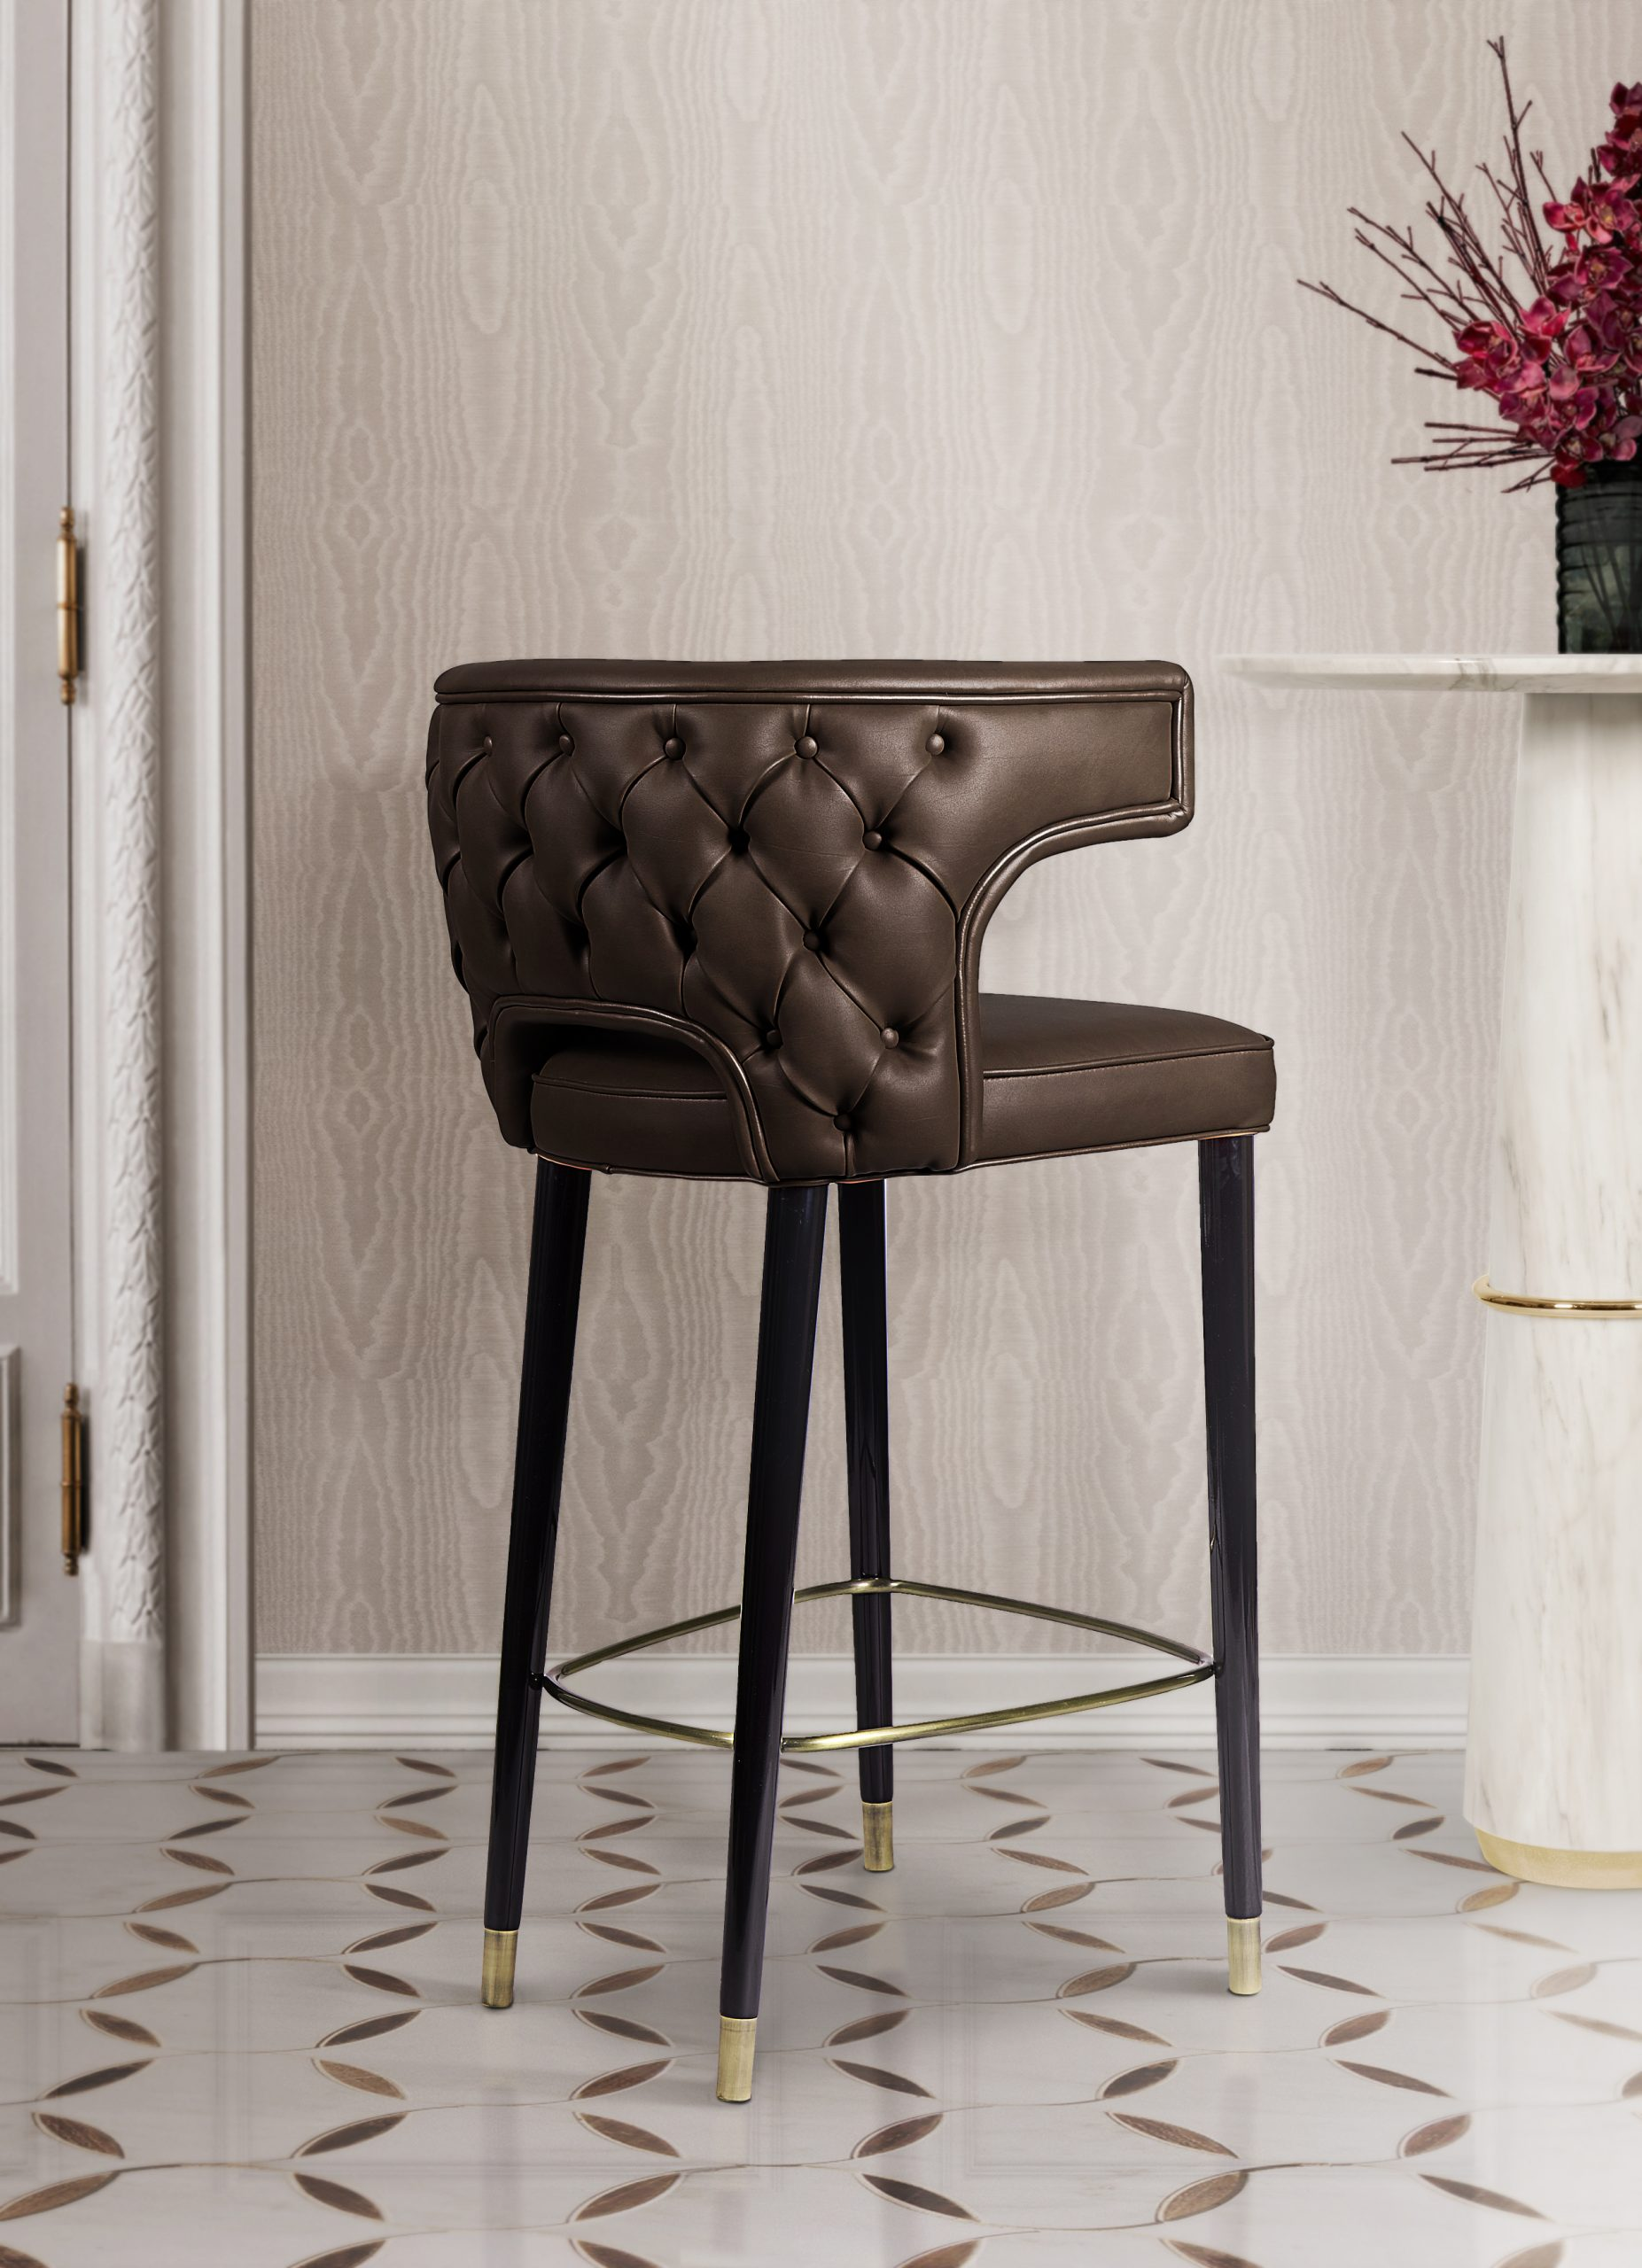 20 Counter Stools To Help You Create Your Dream Kitchen counter stools 20 Counter Stools To Help You Create Your Dream Kitchen BB kansas bar scaled